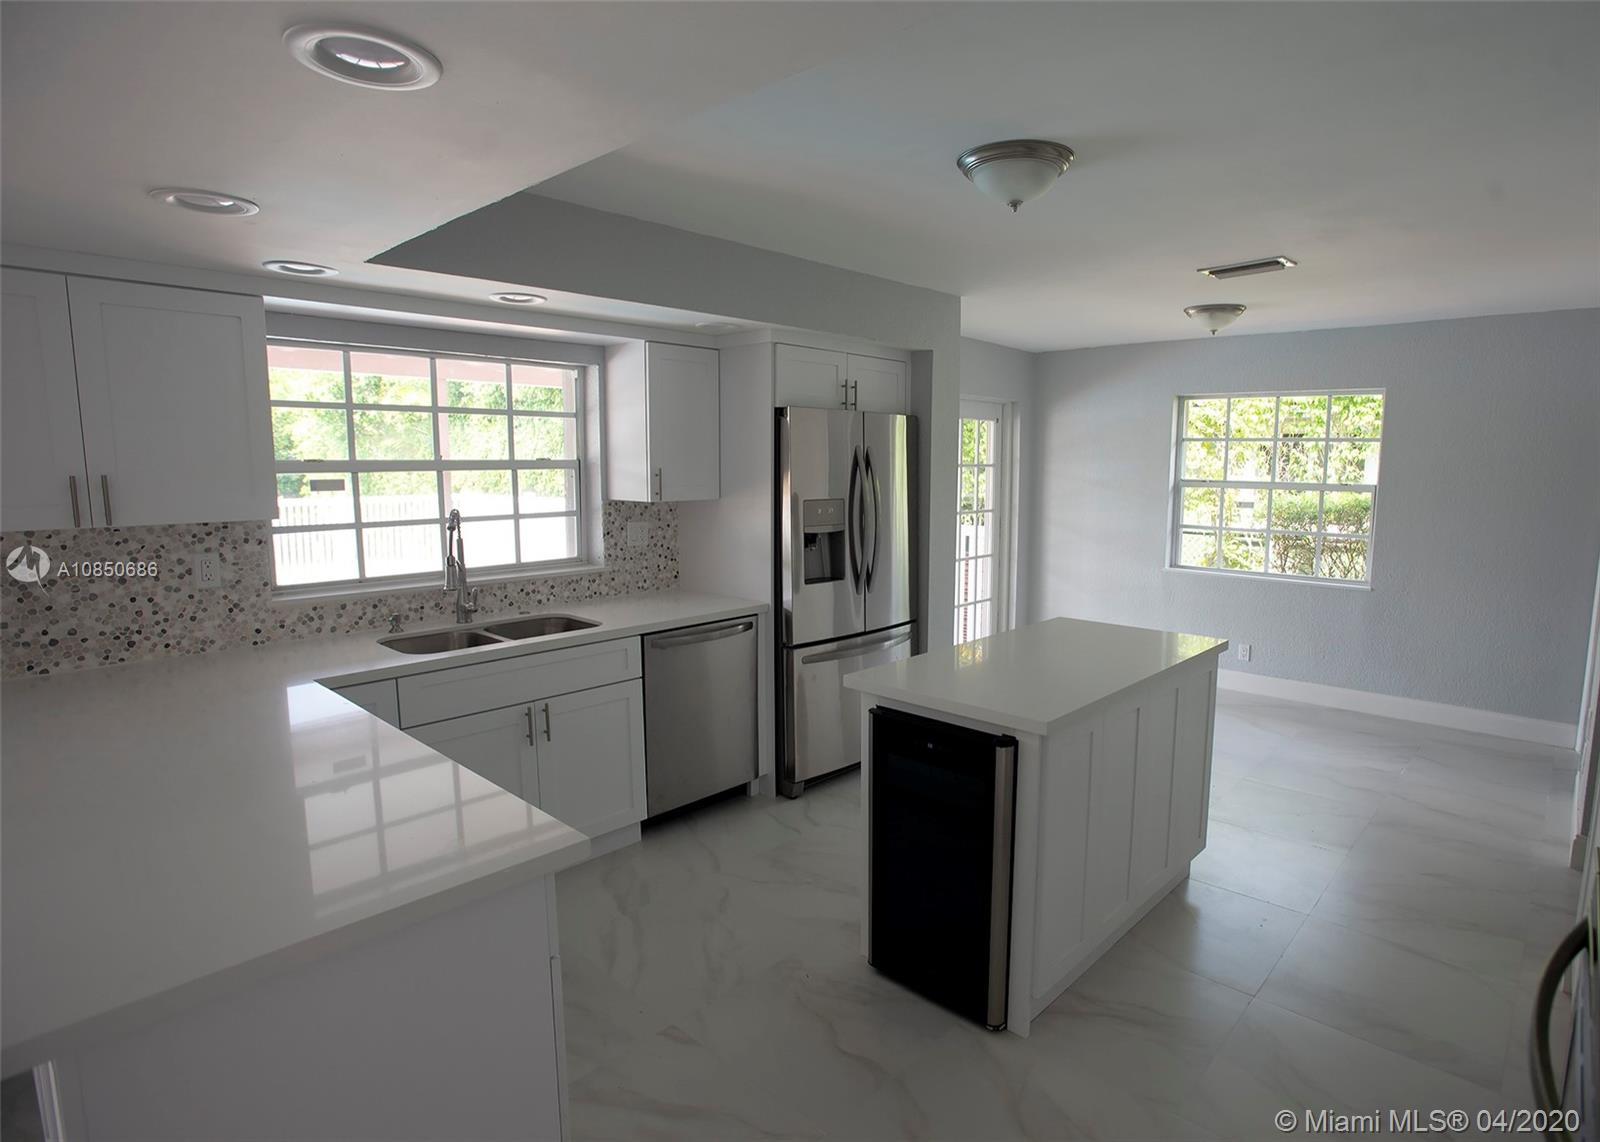 Welcome home! Come check out this recently renovated 4-bedroom/3-bathroom waterfront, pool home in the Cypress Run neighborhood of Coral Springs. Your family will enjoy pool views from the kitchen, family room, dining room, living room, and master bedroom. Property features new kitchen with stainless steel appliances and wine refrigerator, new floors throughout, vaulted ceilings, accordion shutters and a central vacuum system. Beautiful new pavers and landscaping add to the curb appeal. Other recent investments include fresh paint inside and out, remodeled bathrooms and new pool surface. AC replaced in 2014, New roof. 2 Master Bedrooms. No HOA! Won't last!